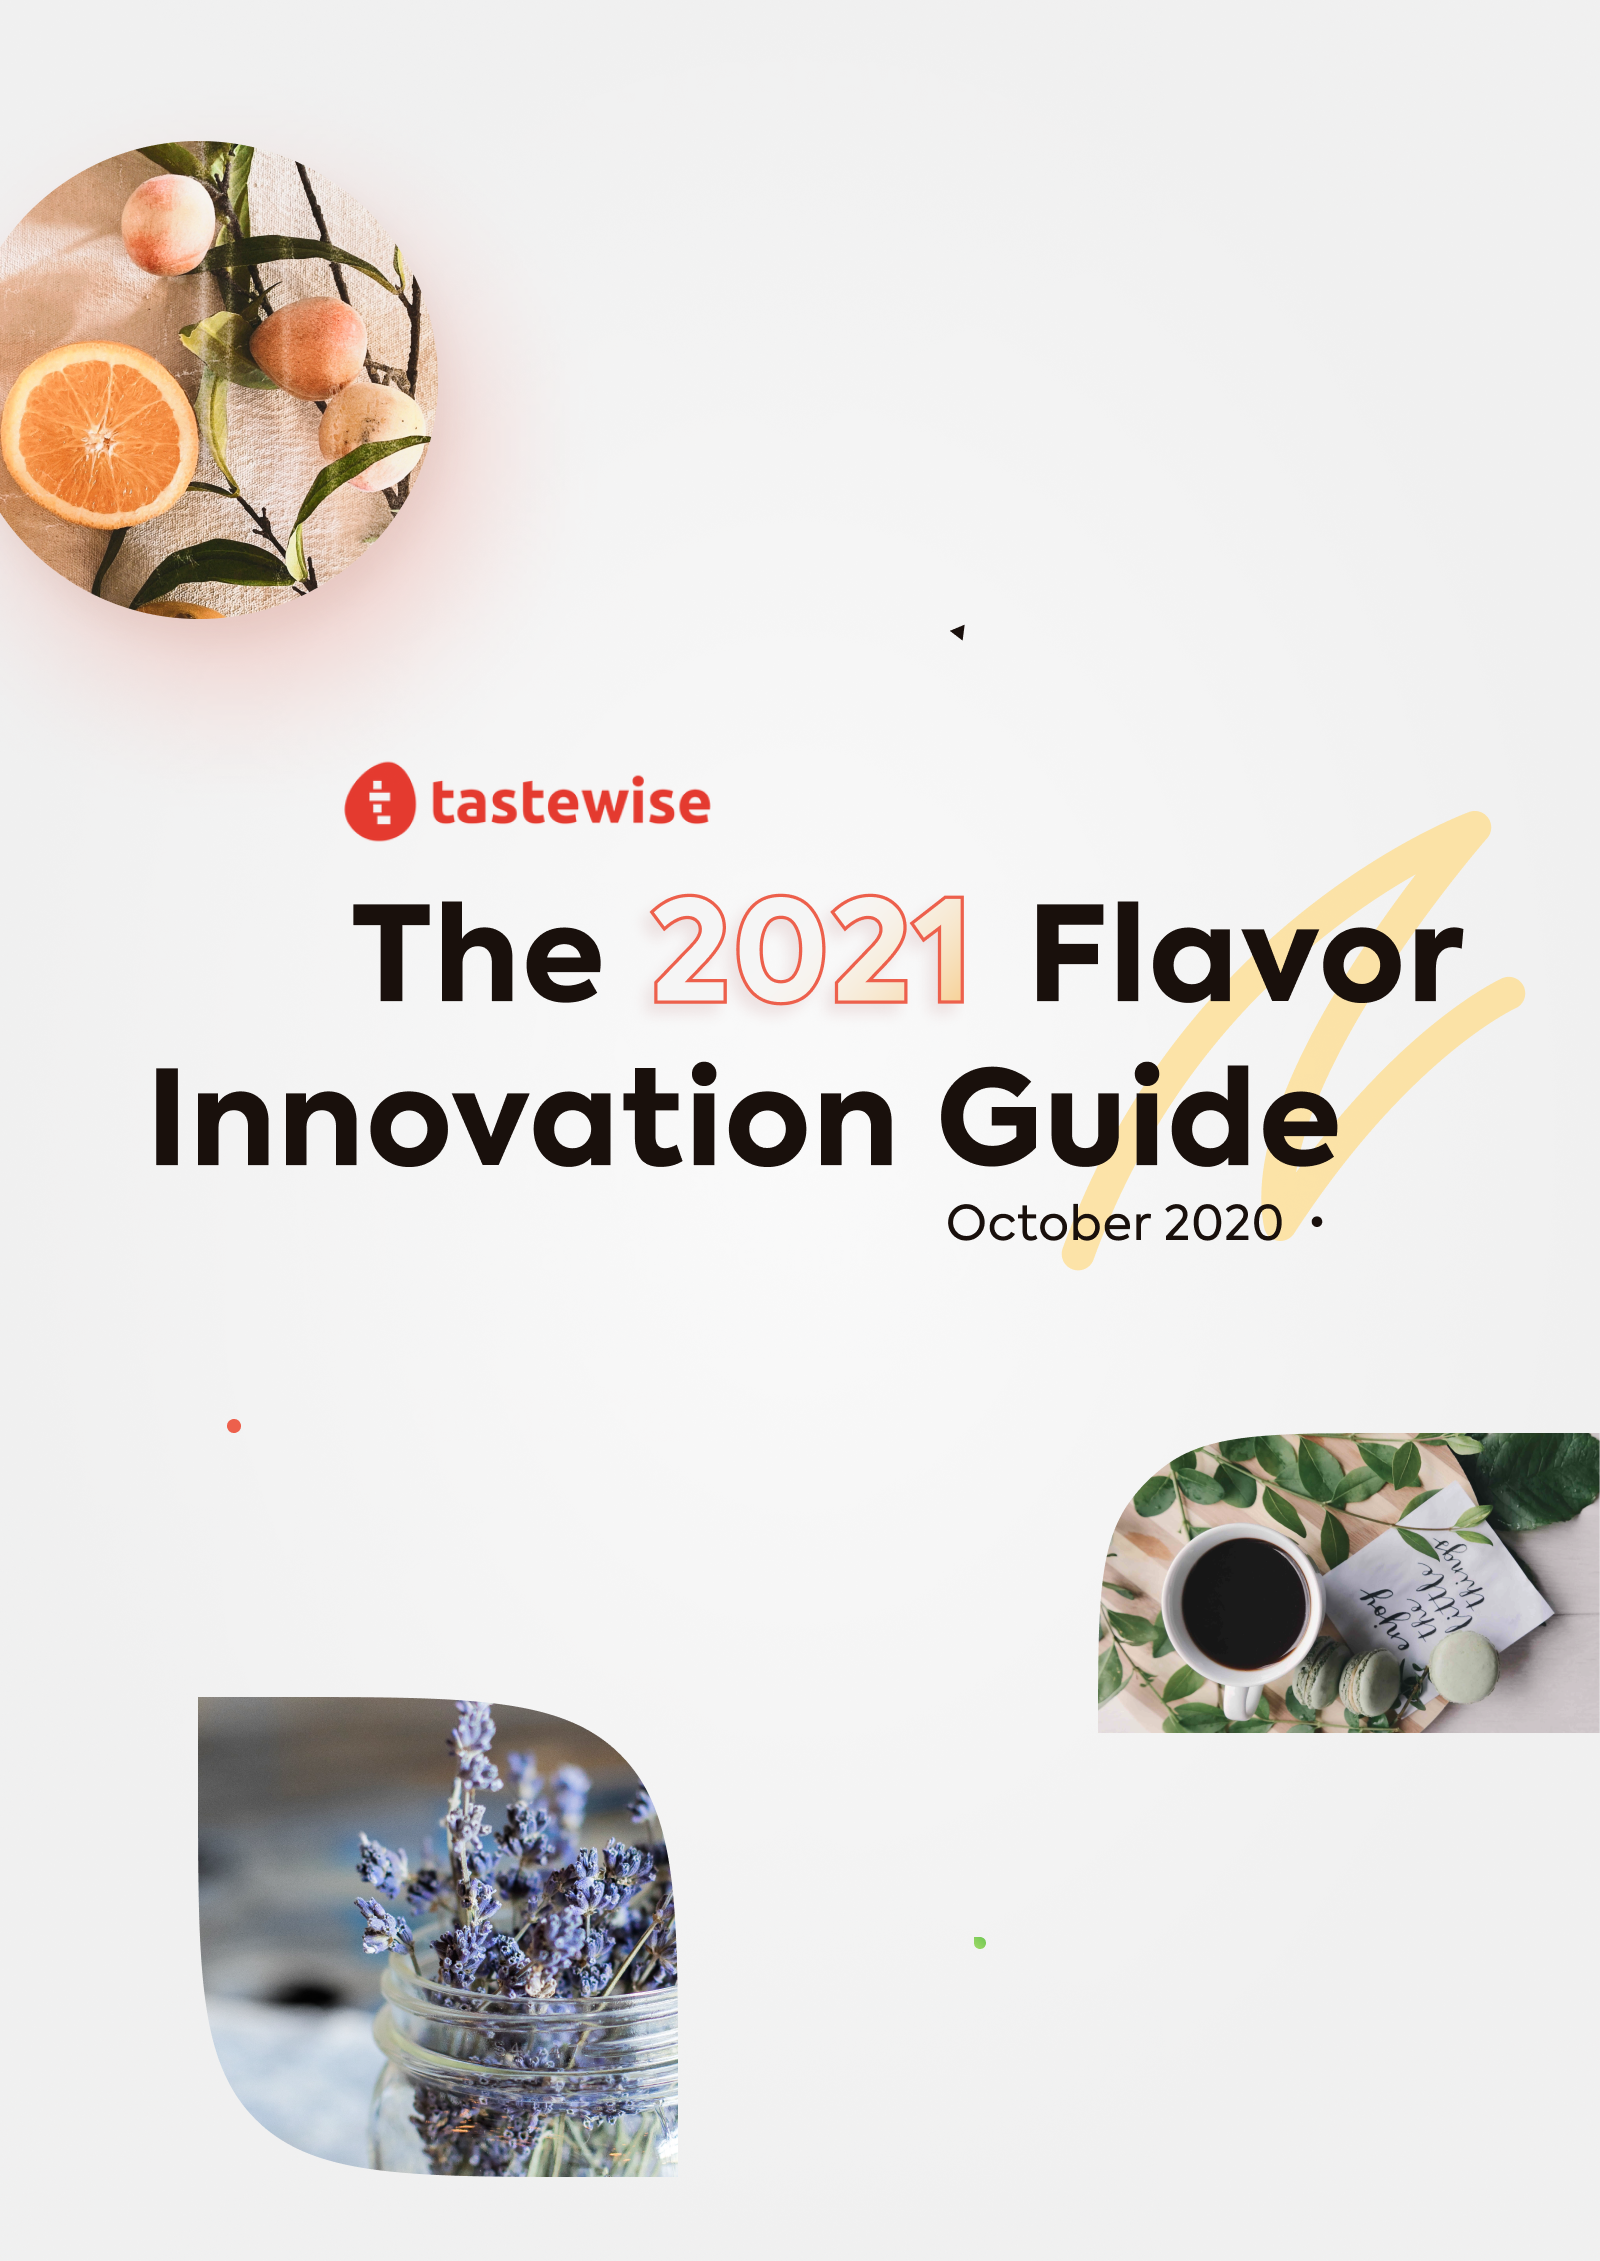 The 2021 Flavor Innovation Guide